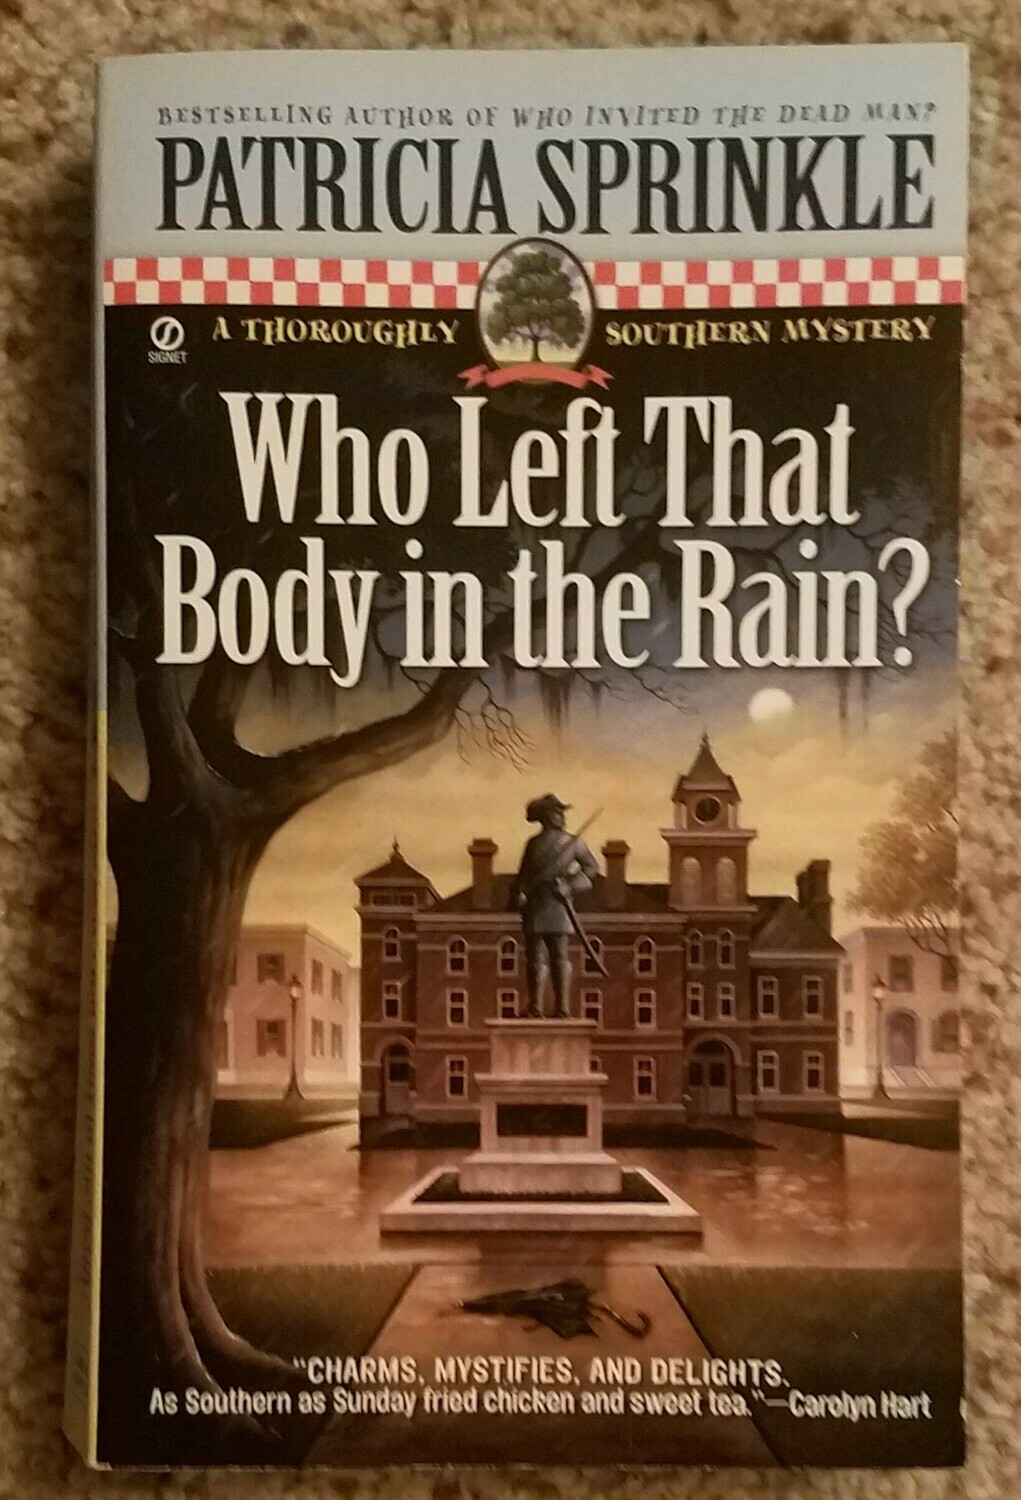 Who Left That Body in the Rain? by Patricia Sprinkle